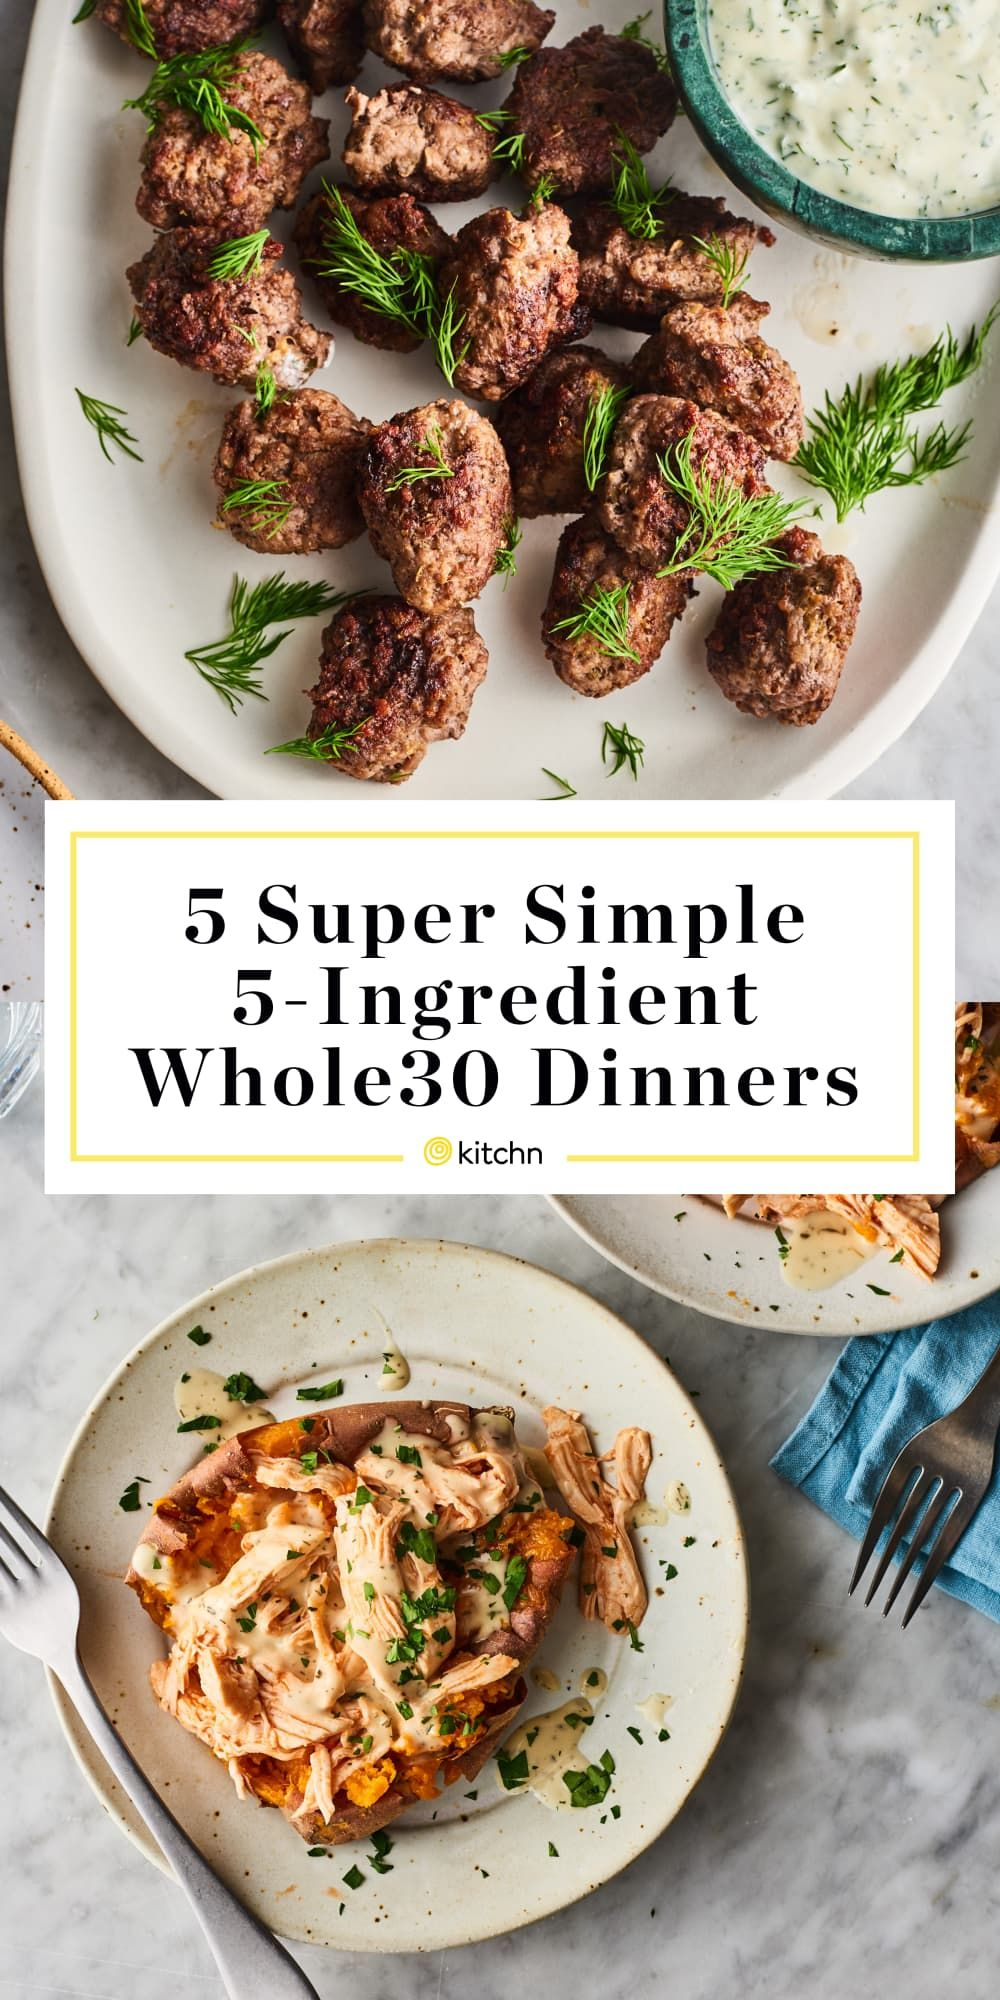 Photo of 5 Satisfying Whole30 Dinners You Can Make with 5 Ingredients